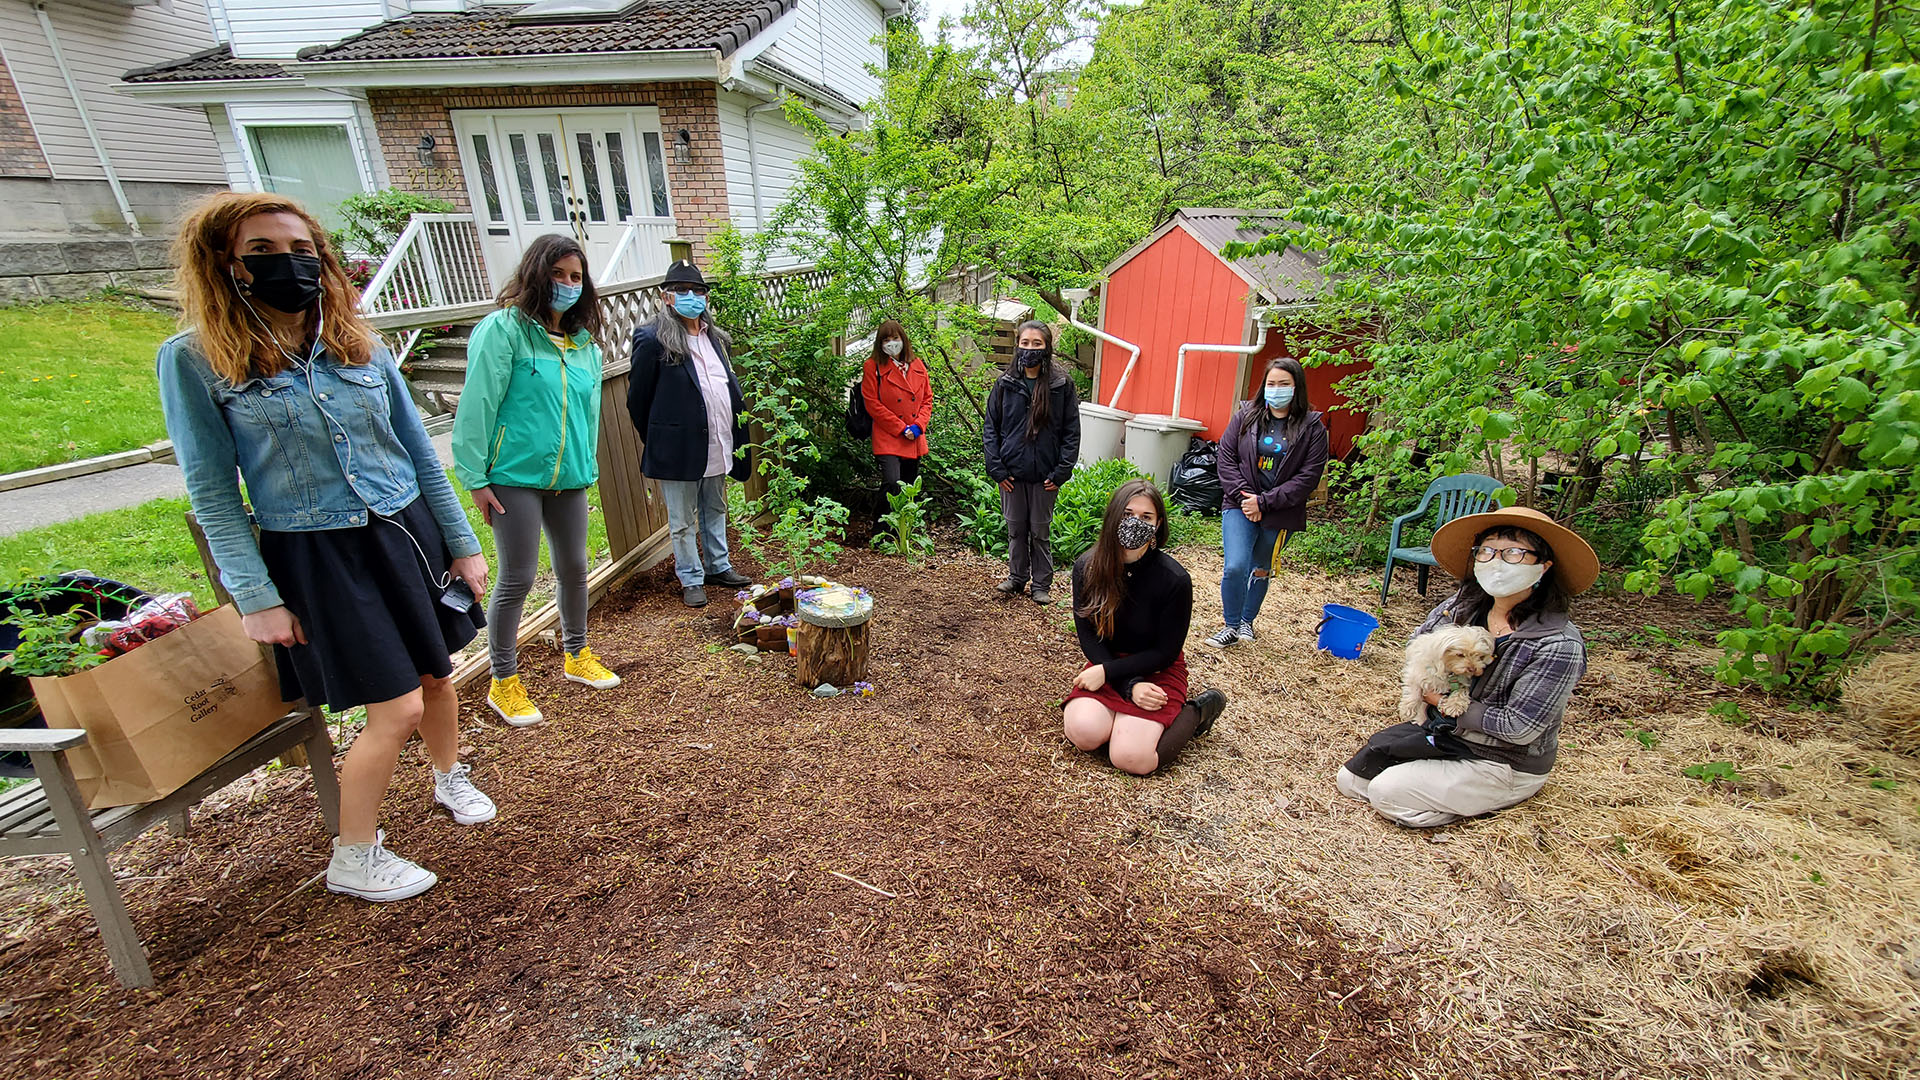 A group of eight adults are outdoors in a community garden